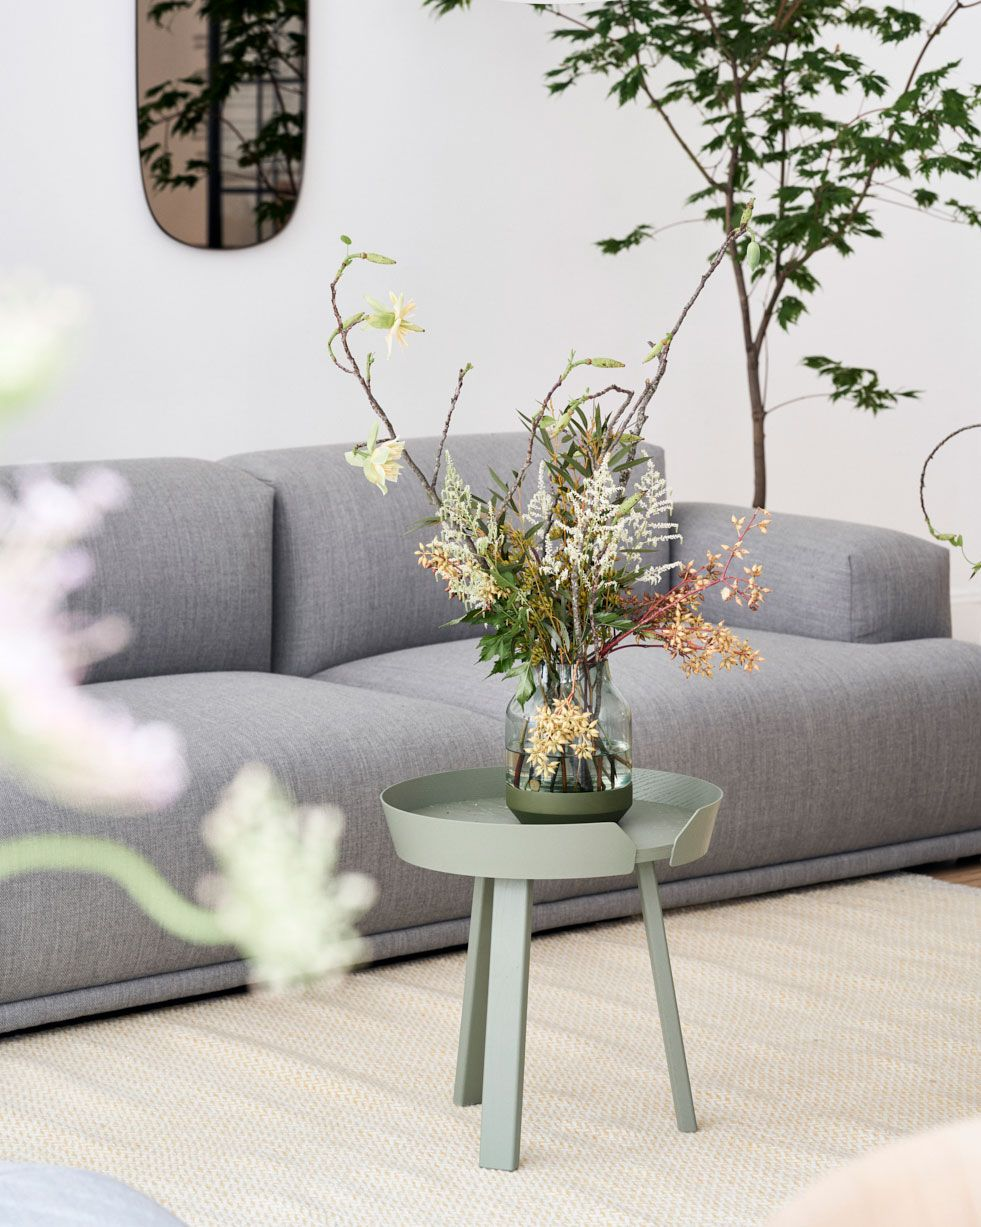 Interior Decor Inspiration For Spring Flower Decorations From Muuto A Form In Mouth Blown Glass The Silent Vase Is Scandinavian Design At Its Subtlest Availa